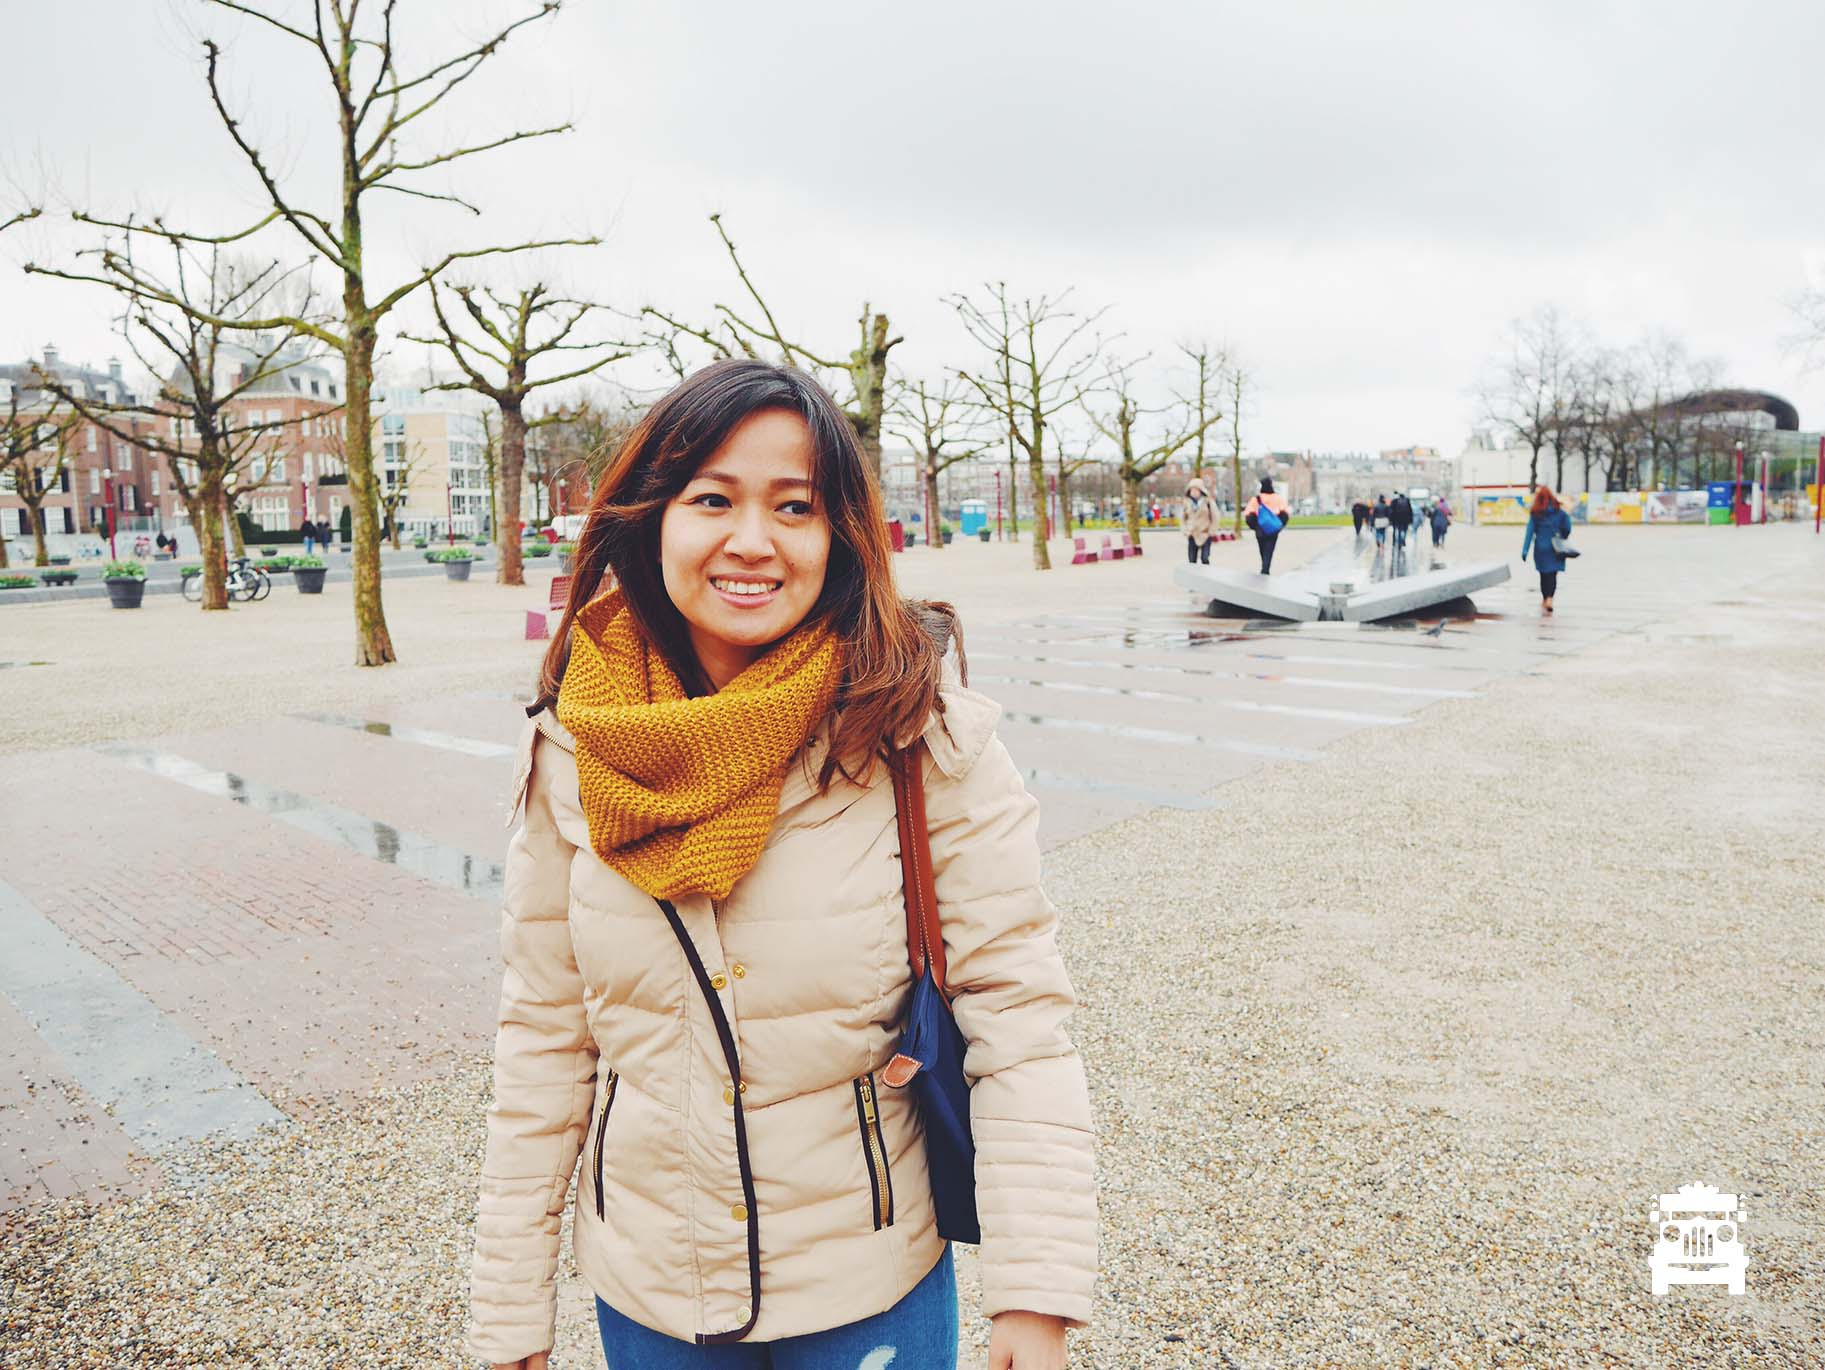 At Museumplein